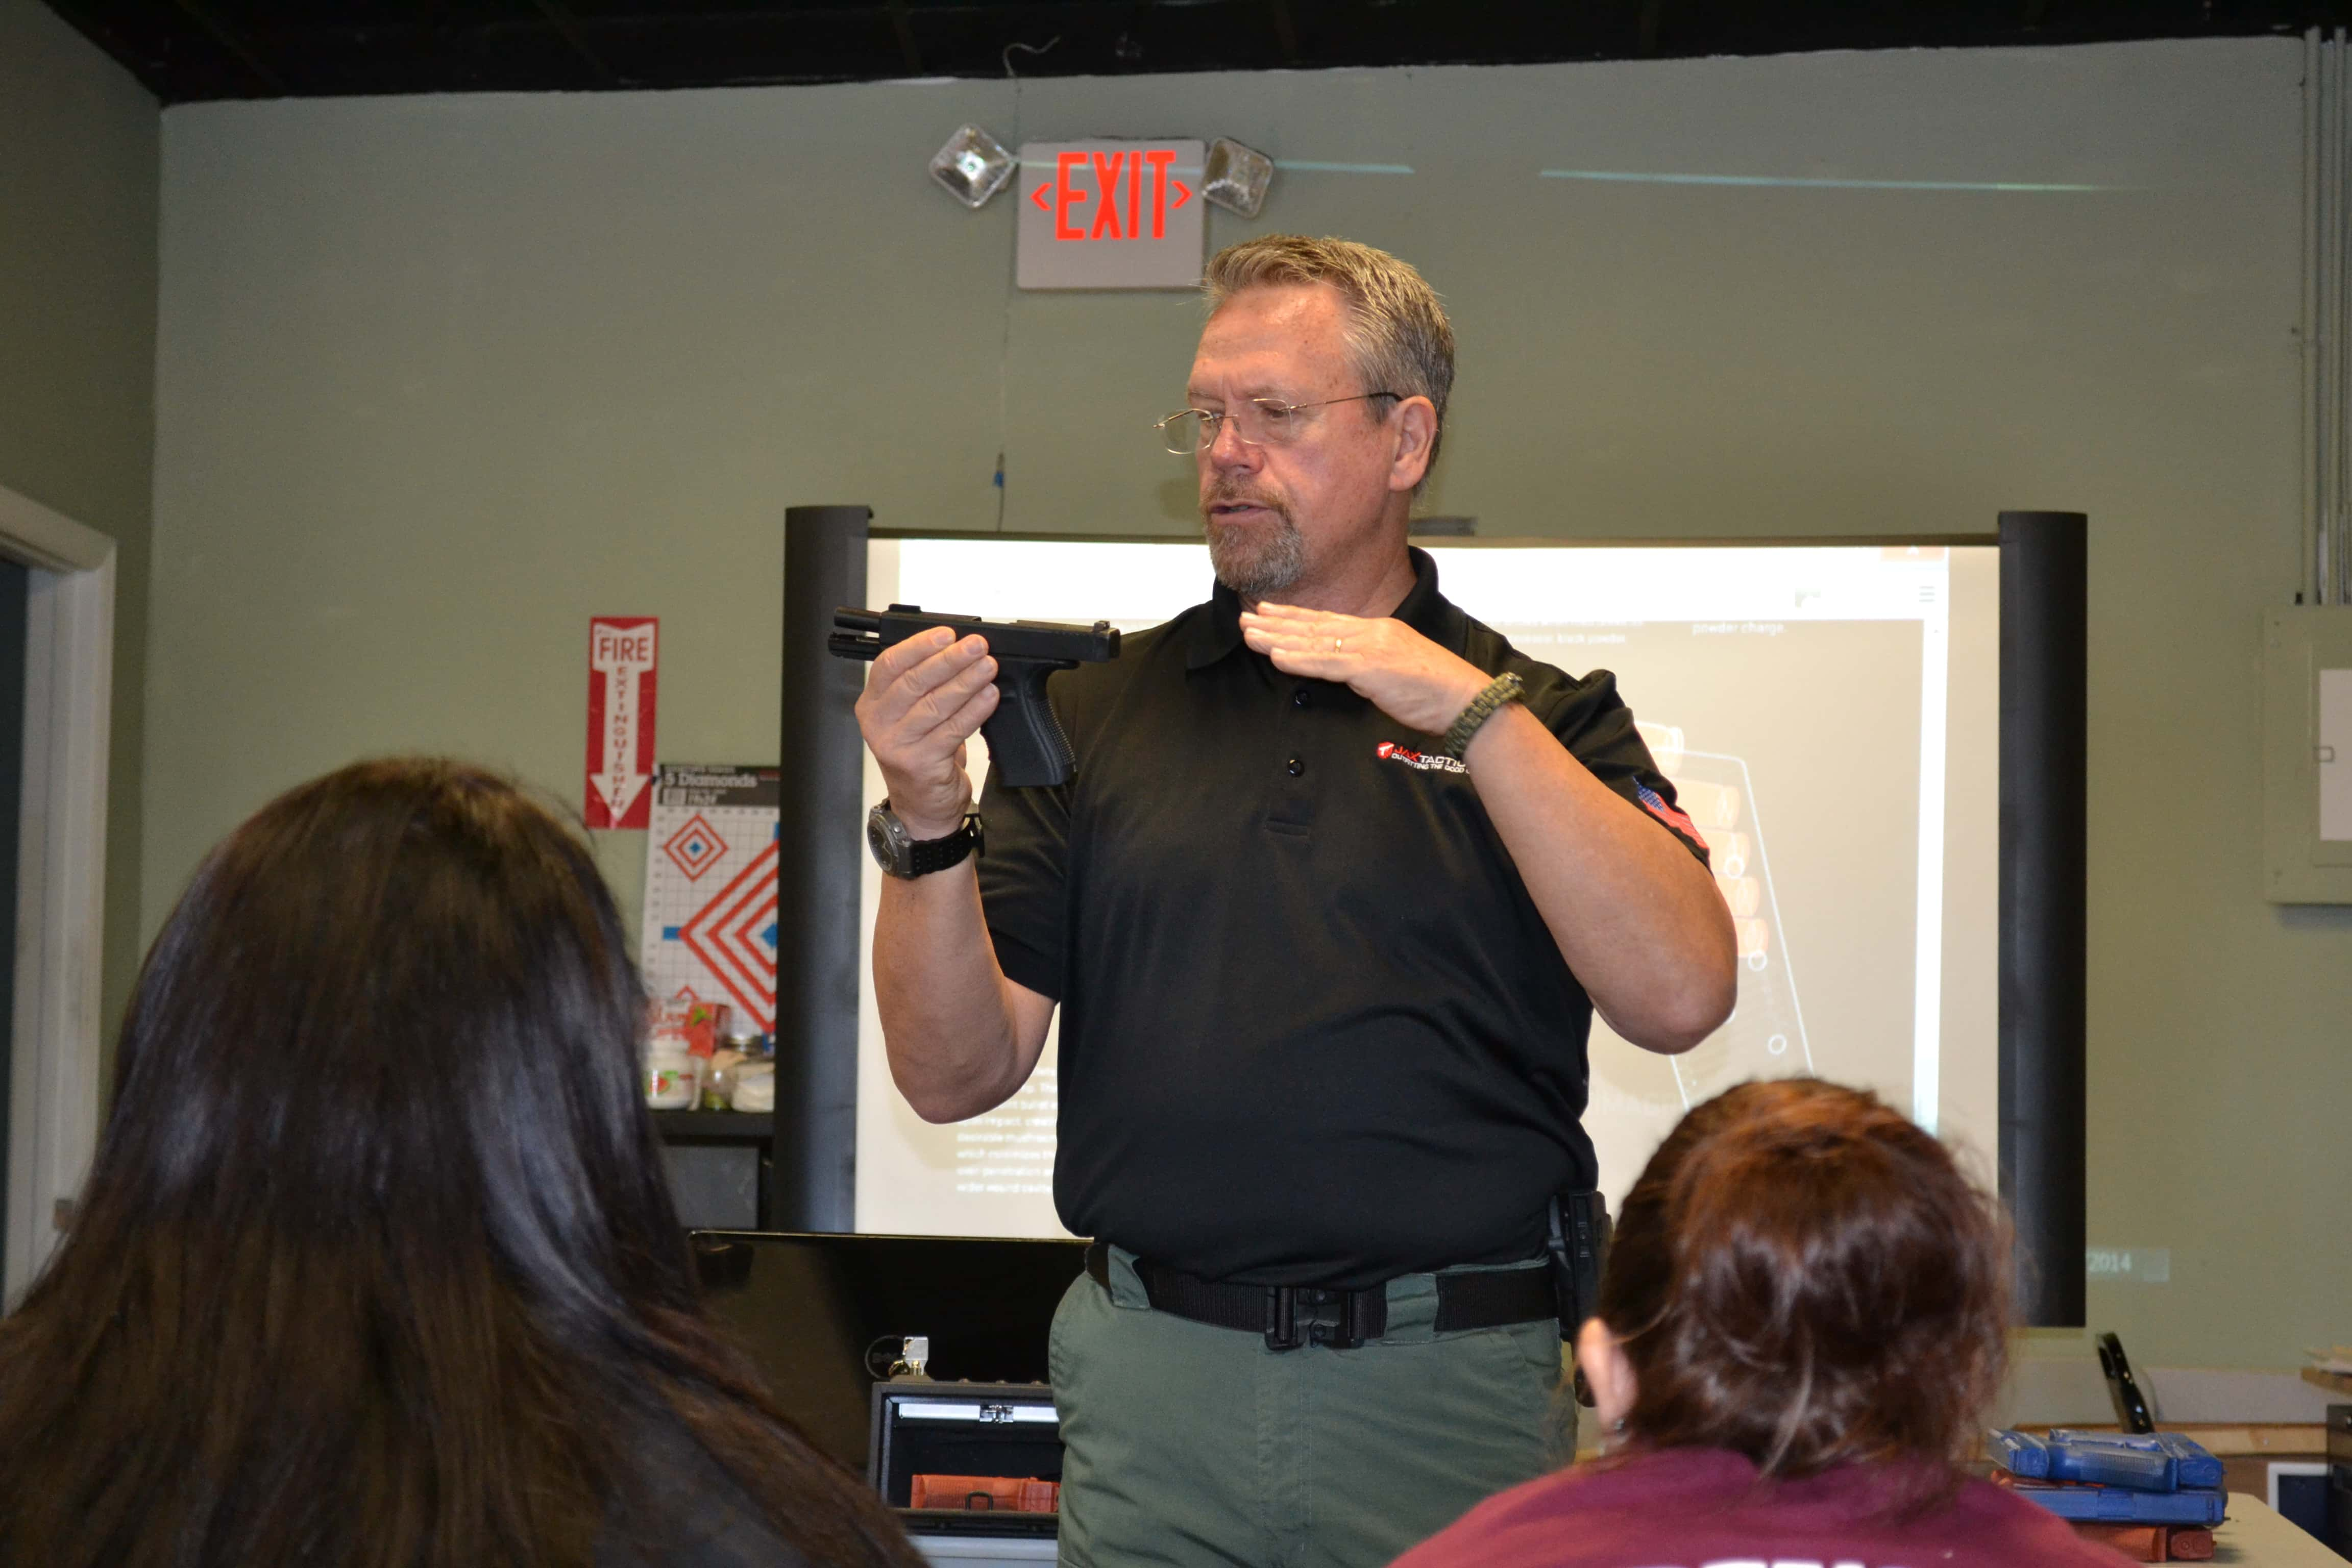 Forensic Students in Jacksonville Attend a Lecture on Firearm Safety